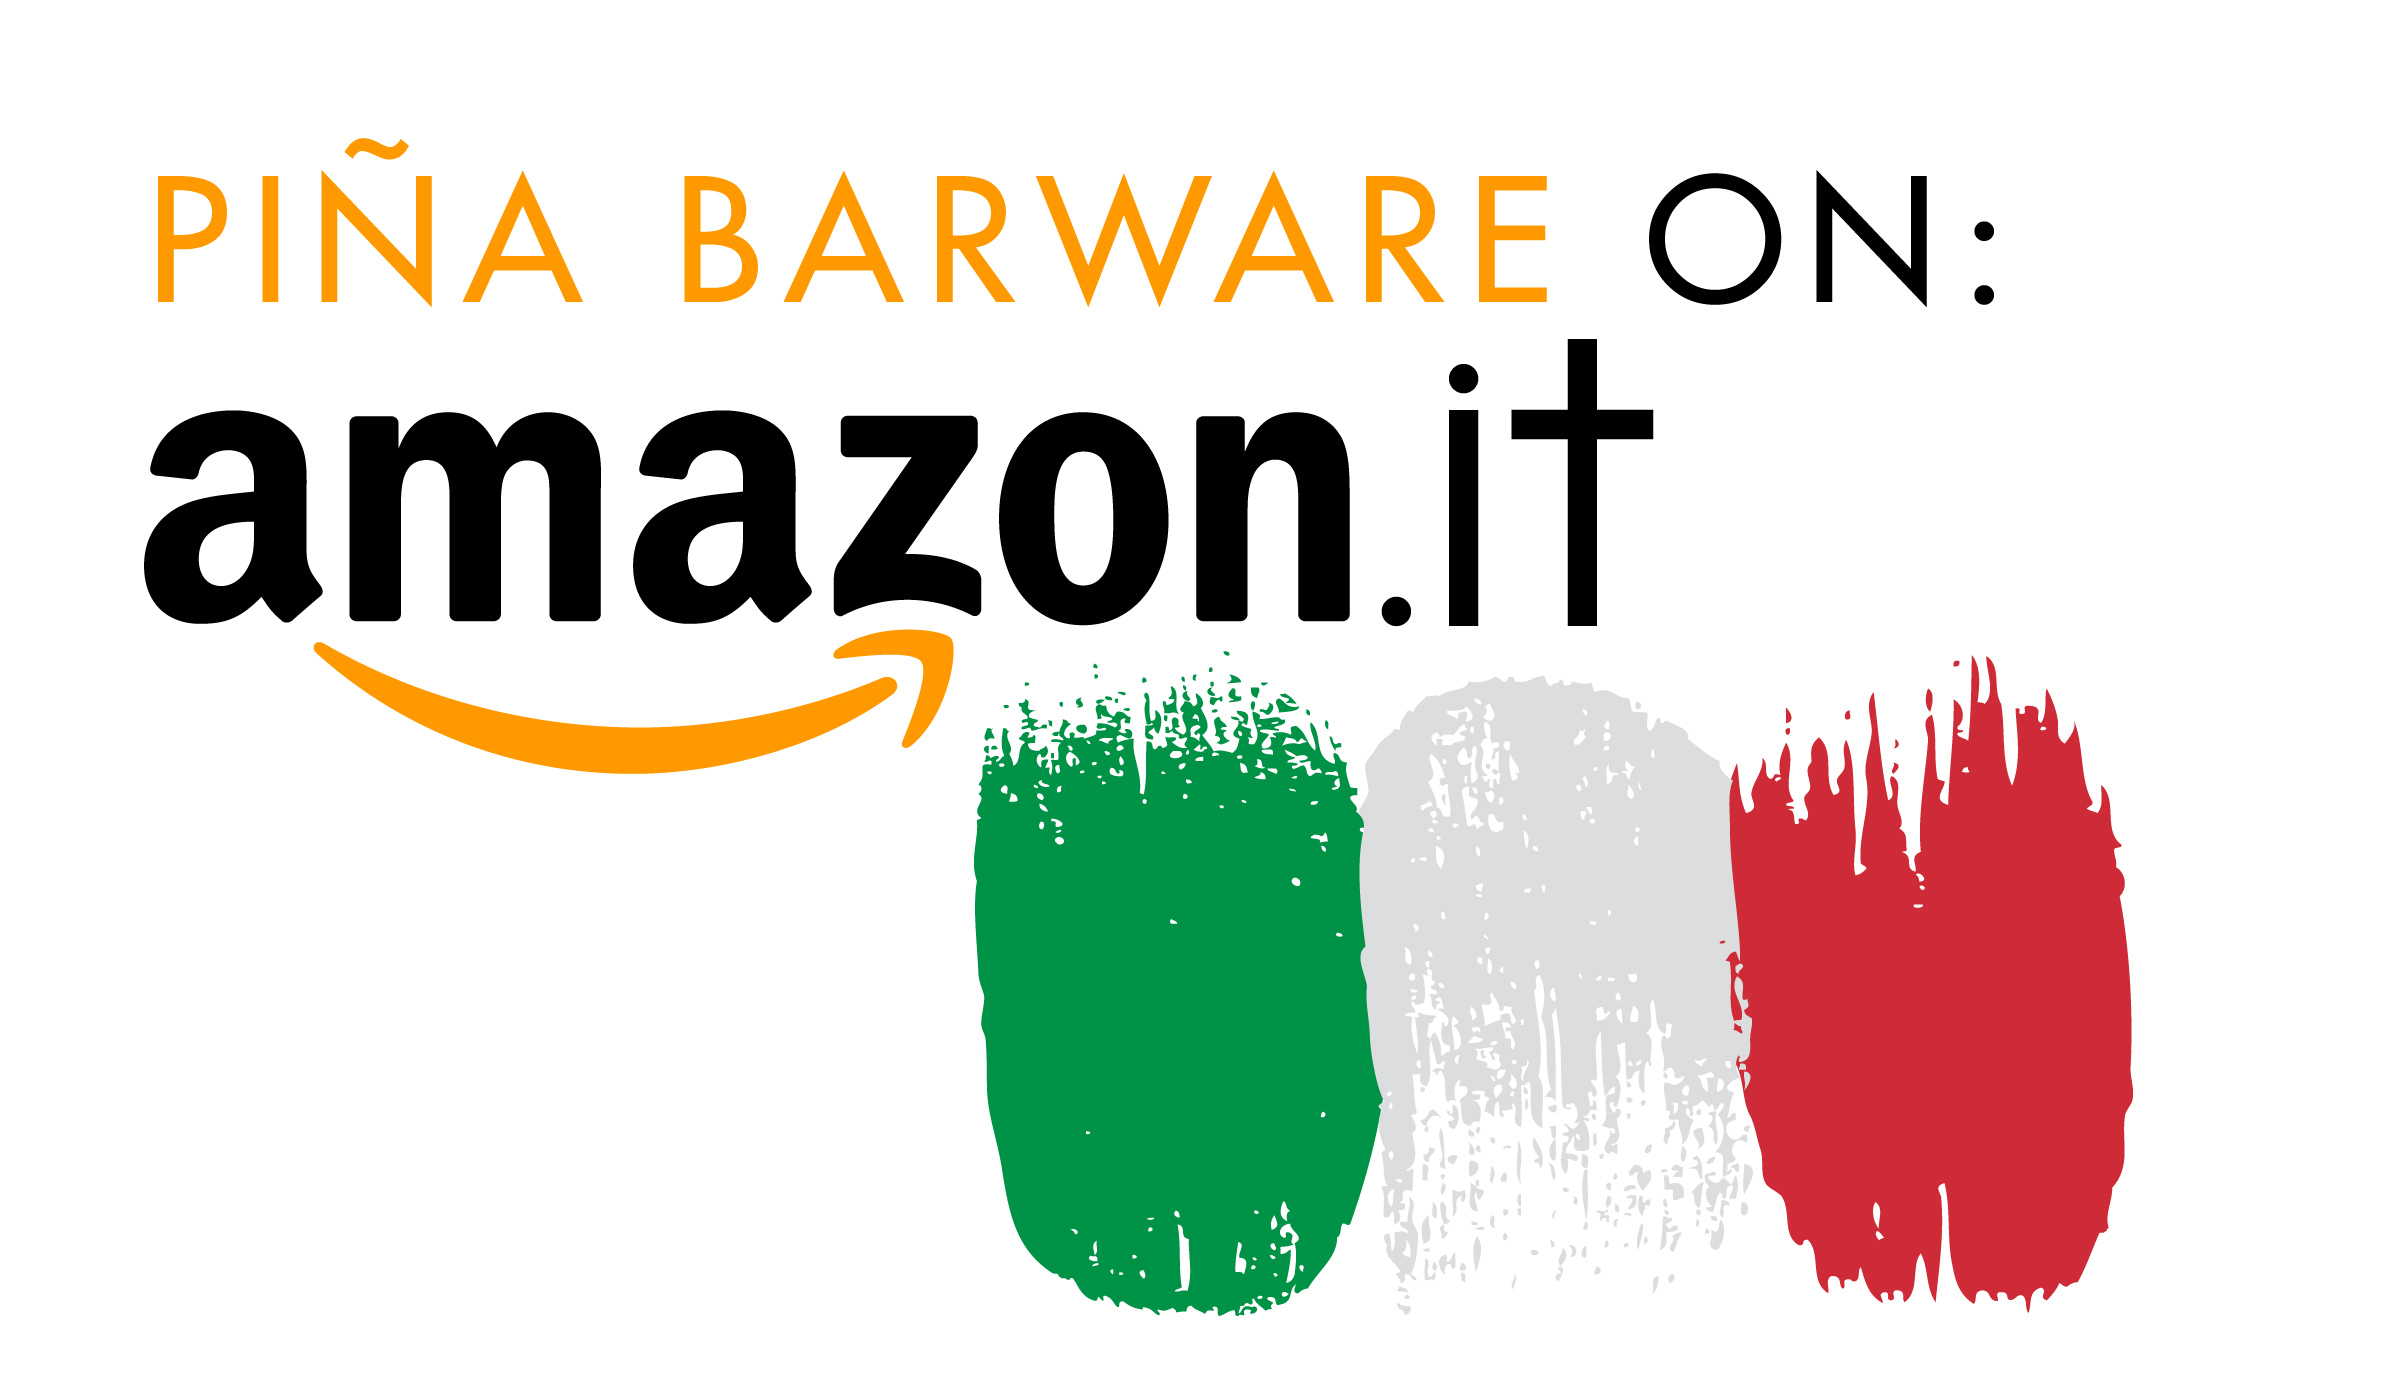 PinaBarwareOnAmazon_Logo_IT_V1-01.jpg